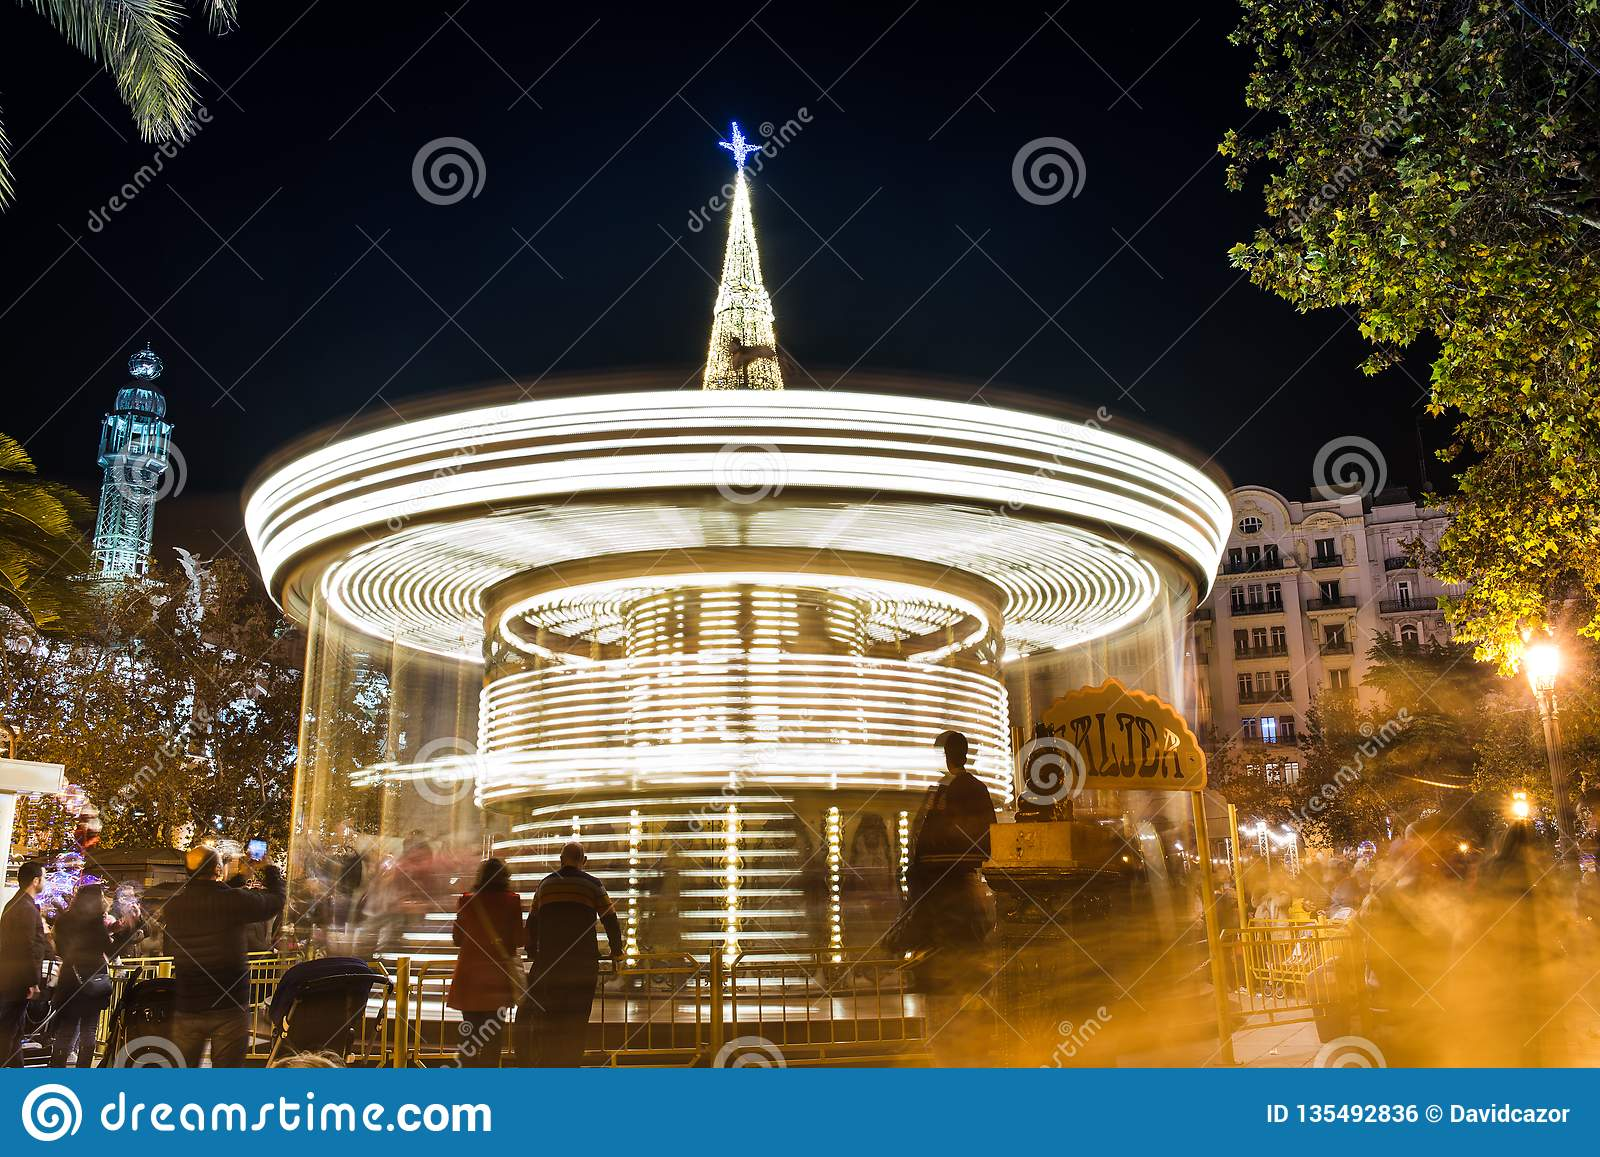 Christmas merry-go-round in the square